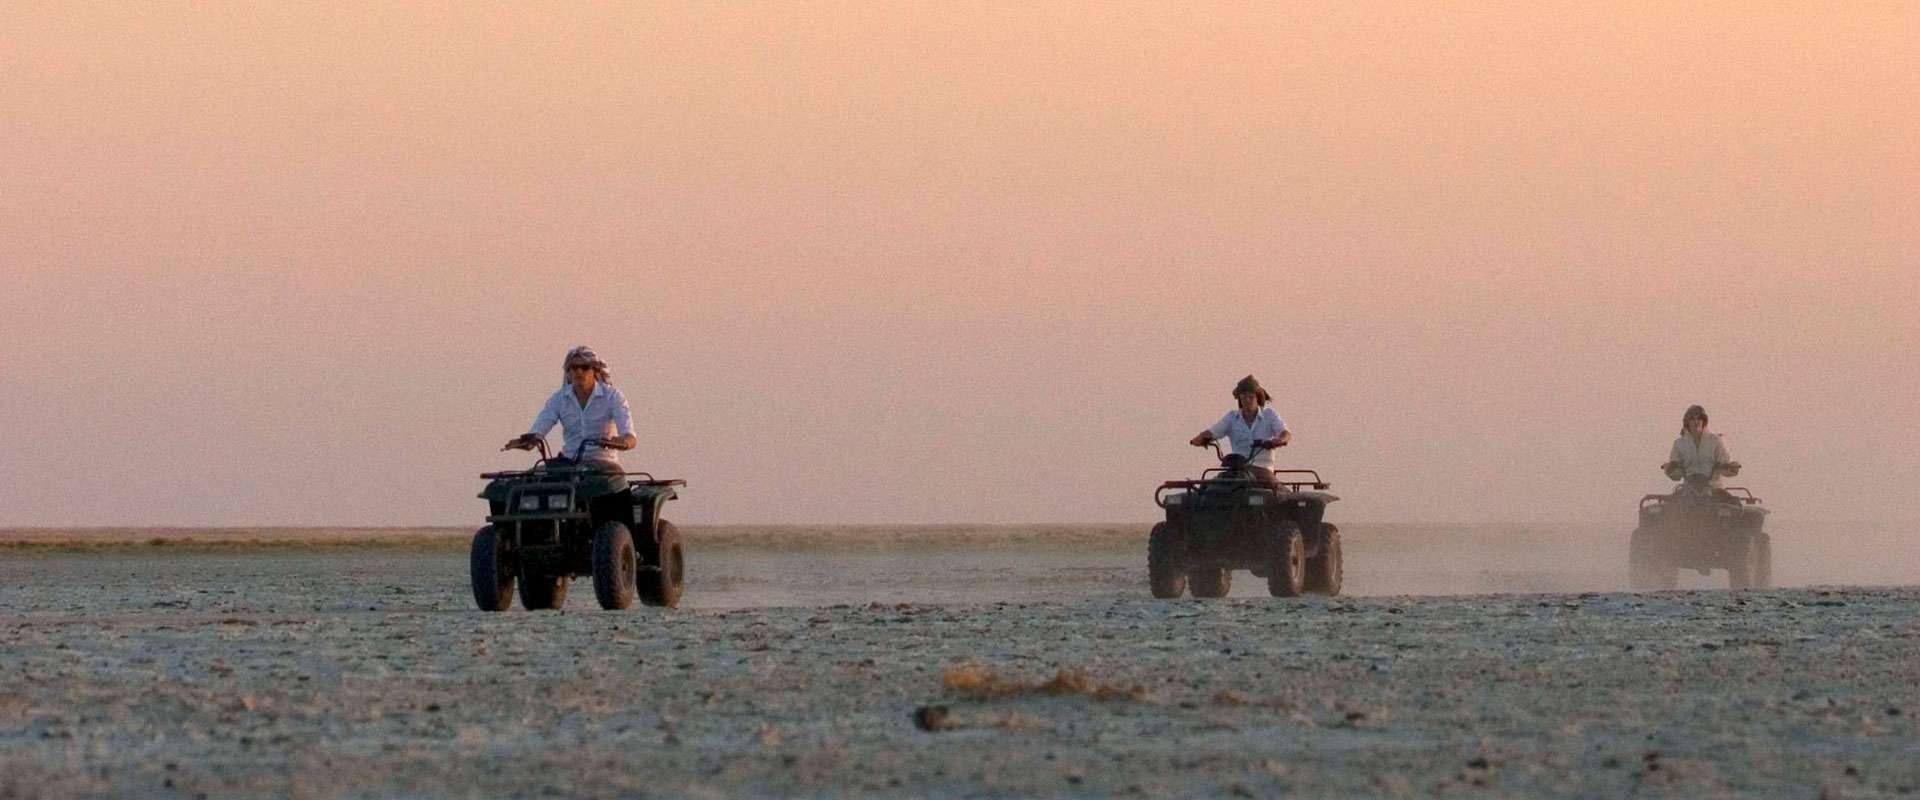 Botswana Safari Ideas